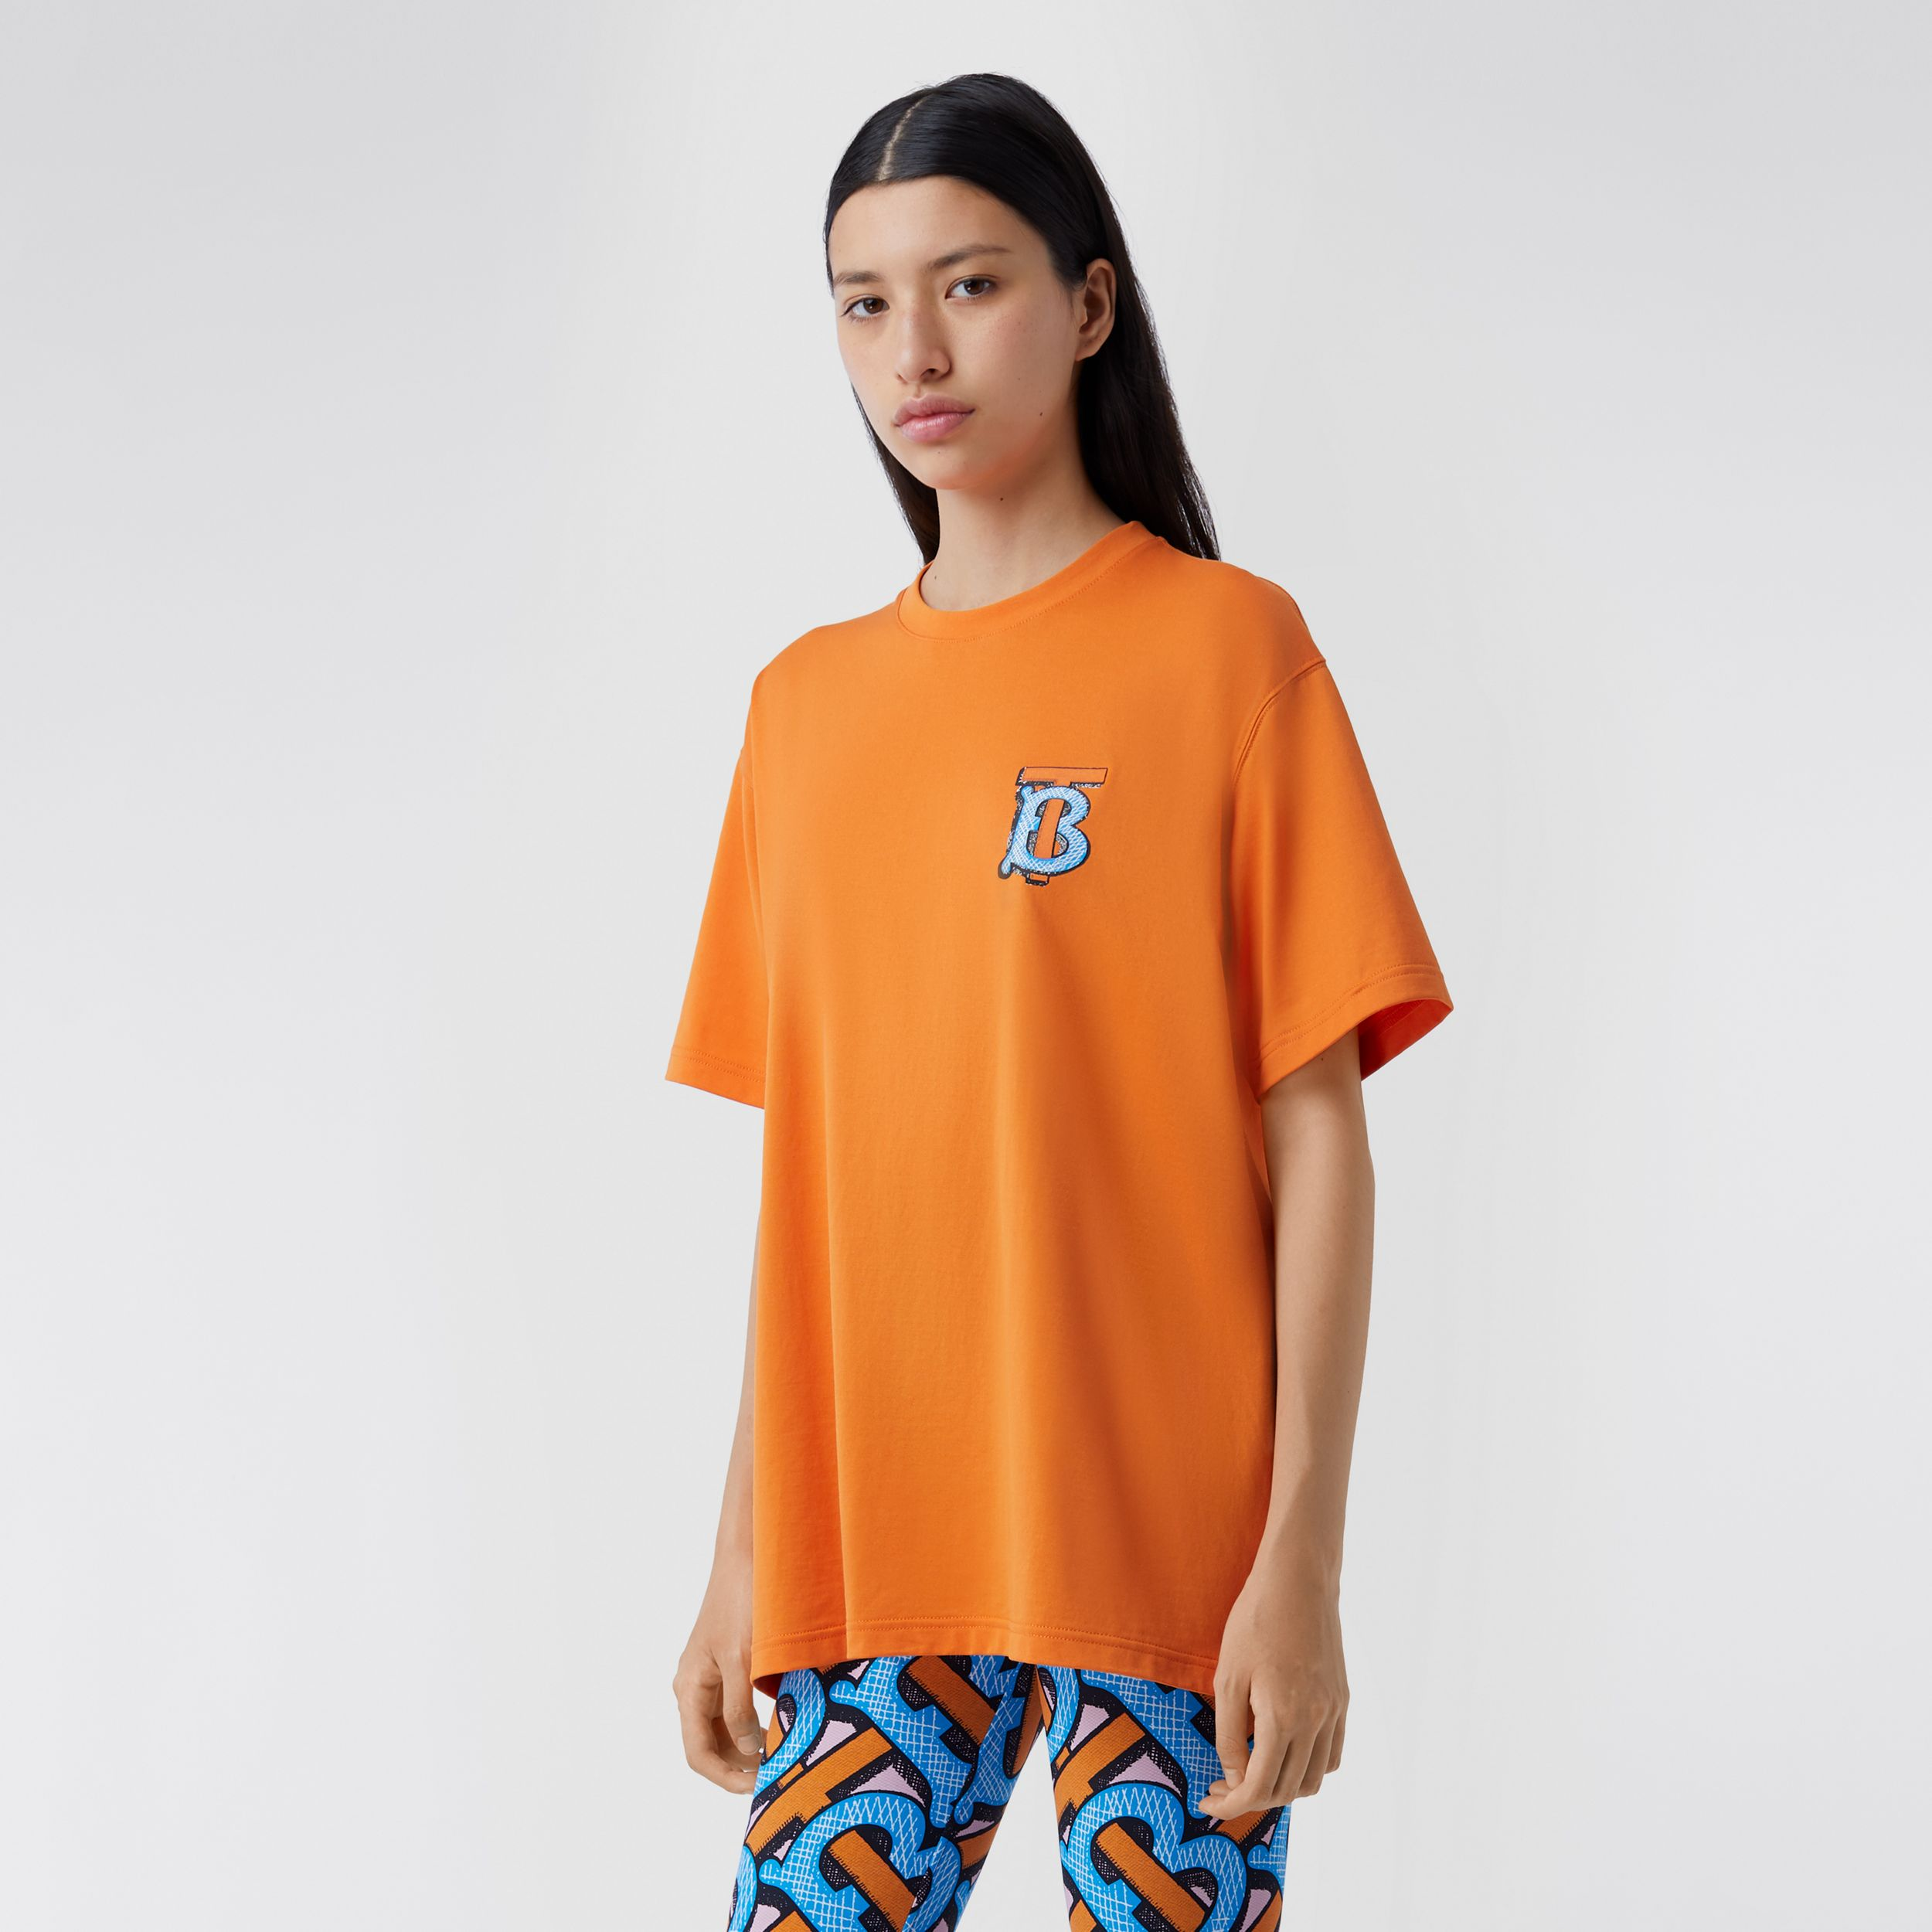 Monogram Motif Cotton T-shirt – Unisex in Bright Orange | Burberry United Kingdom - 2